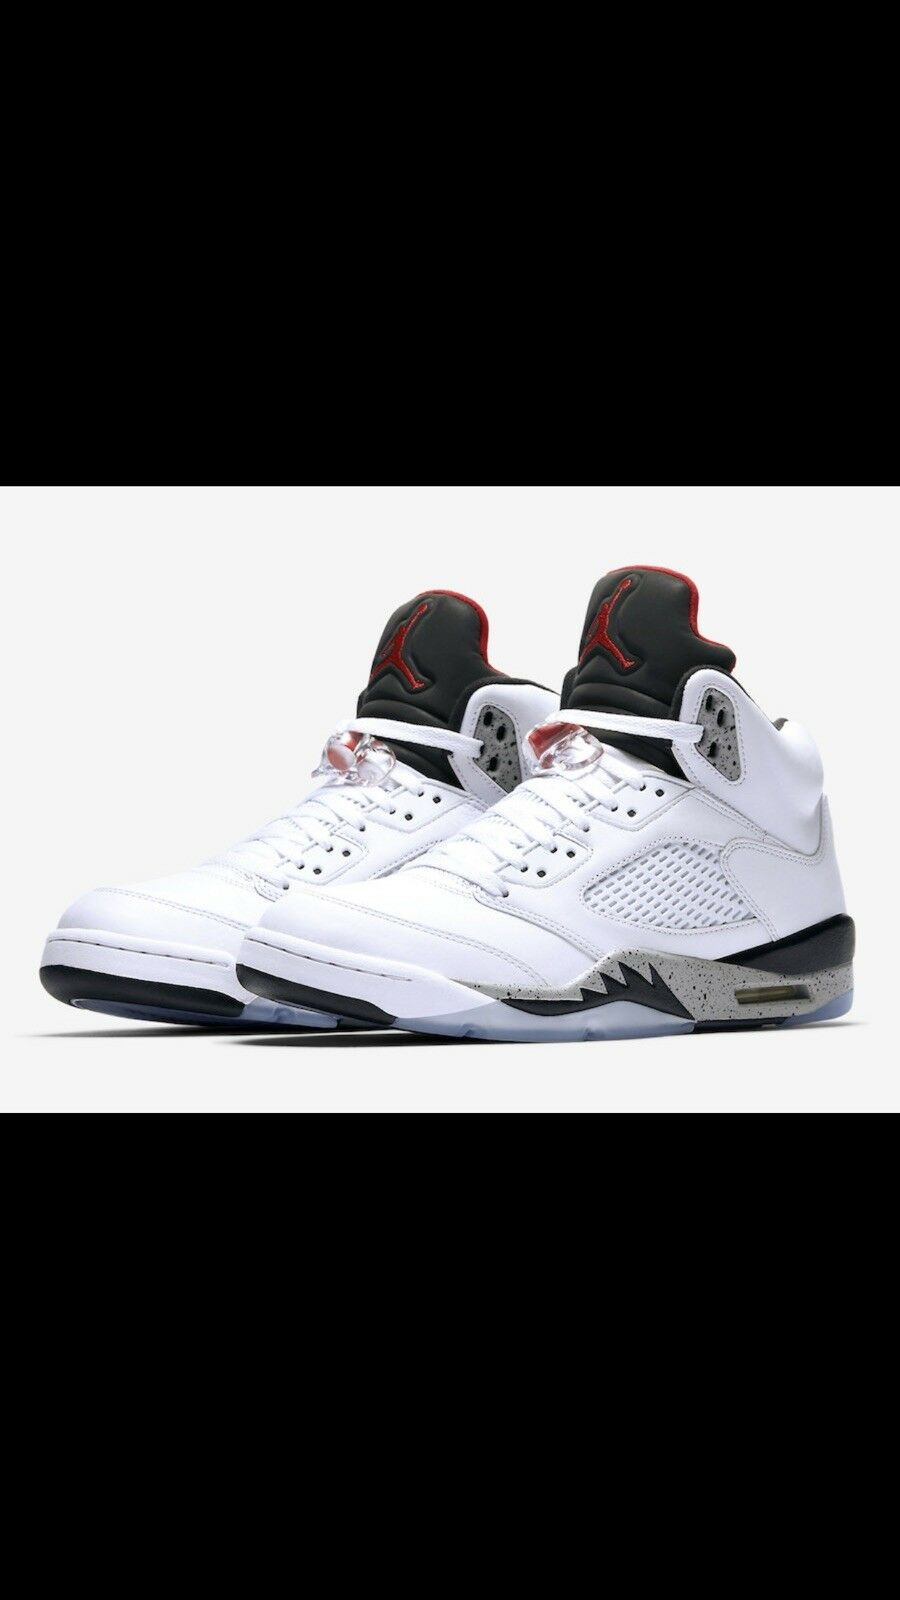 "d5bd99913d4 Nike Air Jordan 5 Retro ""White Cement"" White Black Size 13 Red Grey  nxpdai5999-Athletic Shoes"